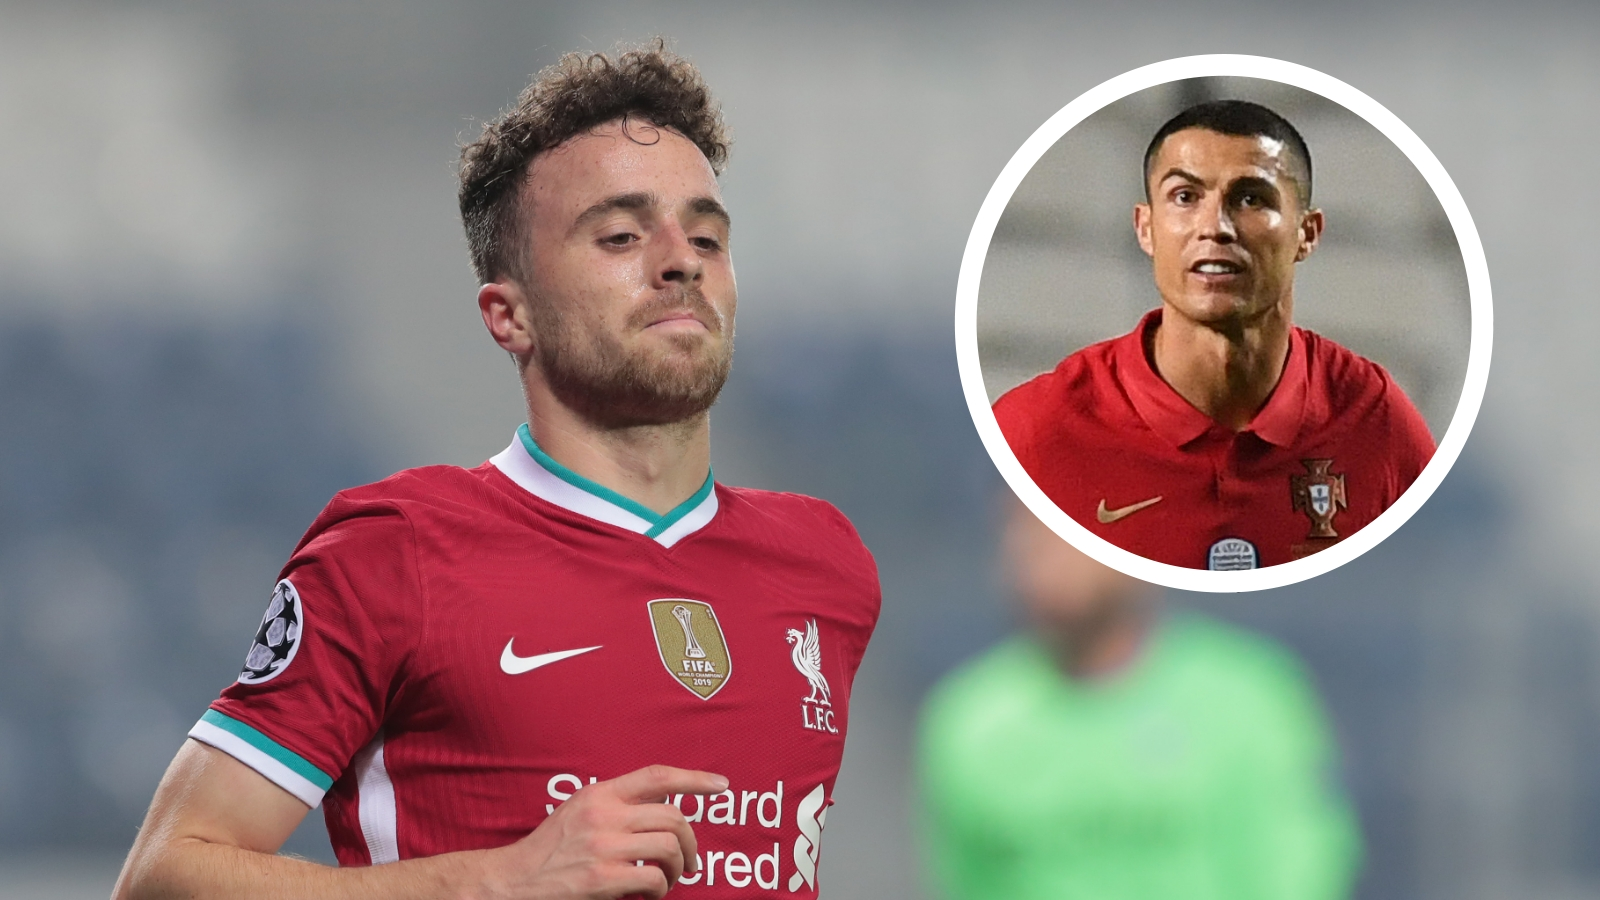 'Cristiano Ronaldo was my hero' – Liverpool star Jota on growing up admiring Portugal icon